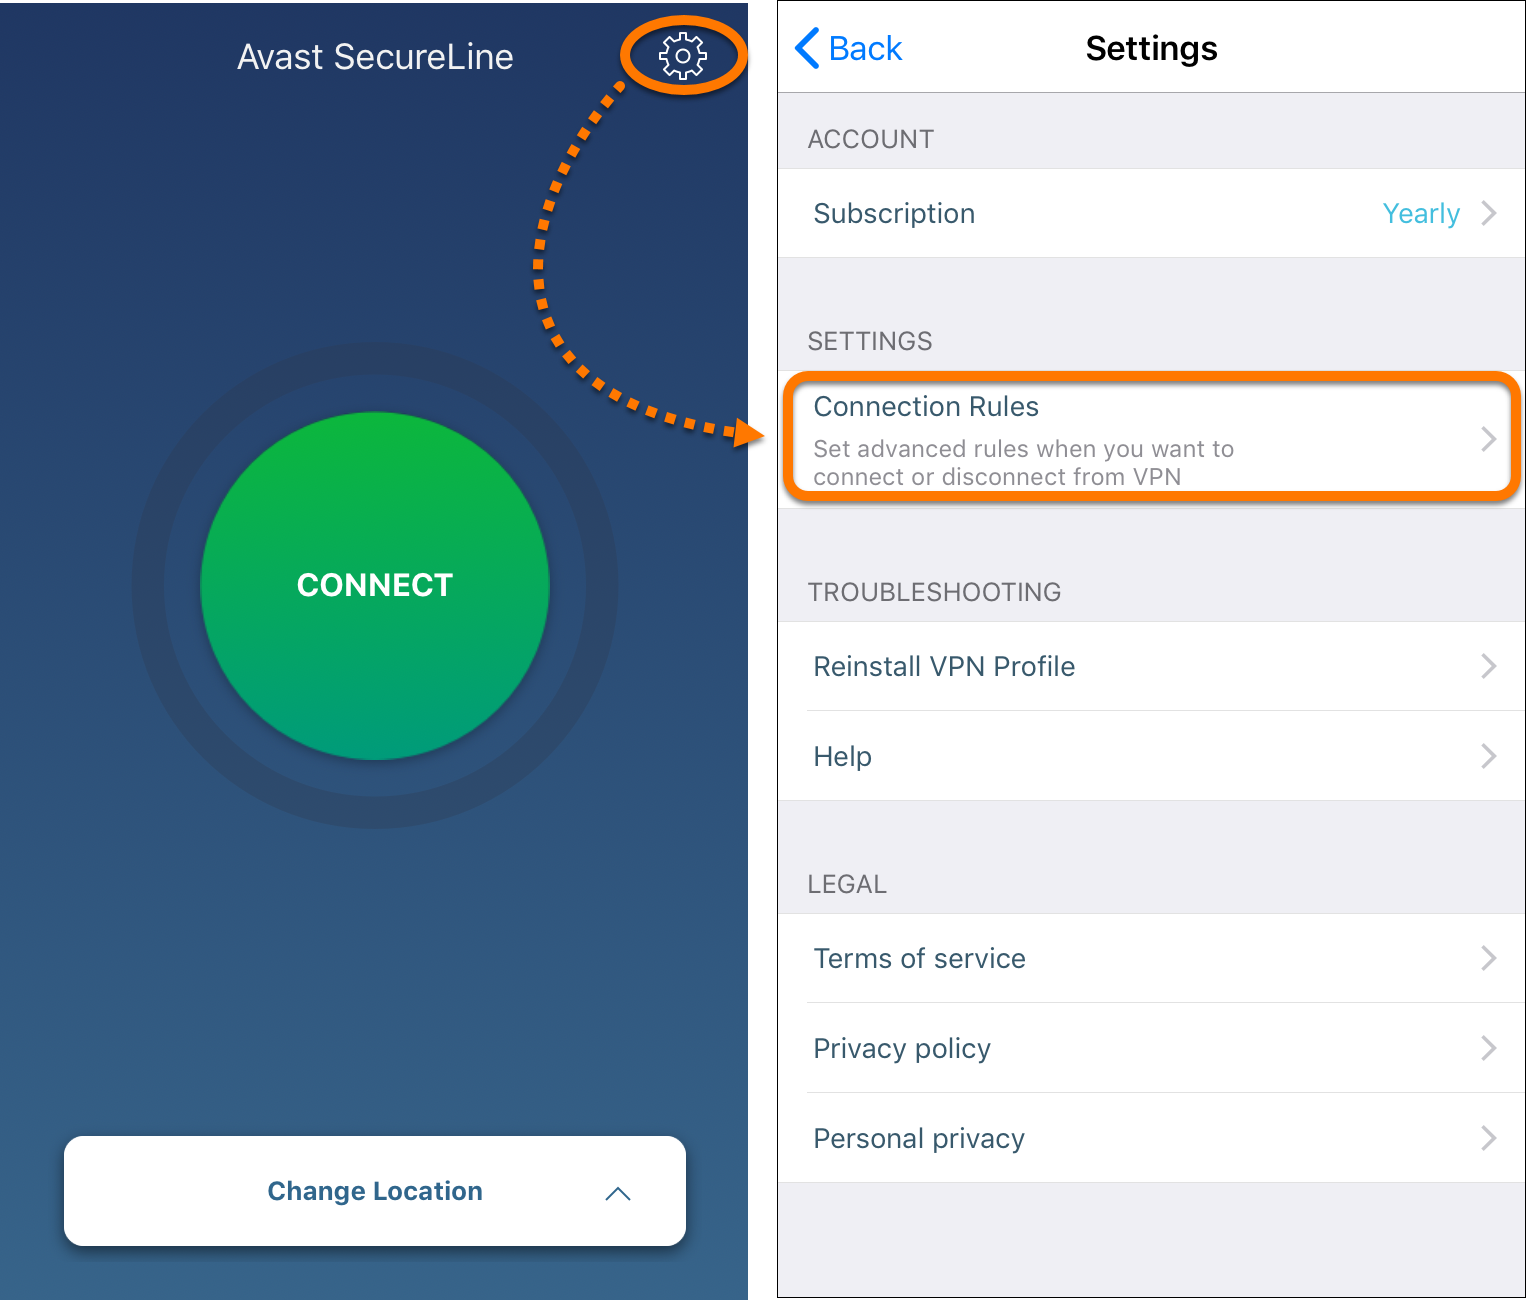 Automatically enabling Avast SecureLine VPN when connected